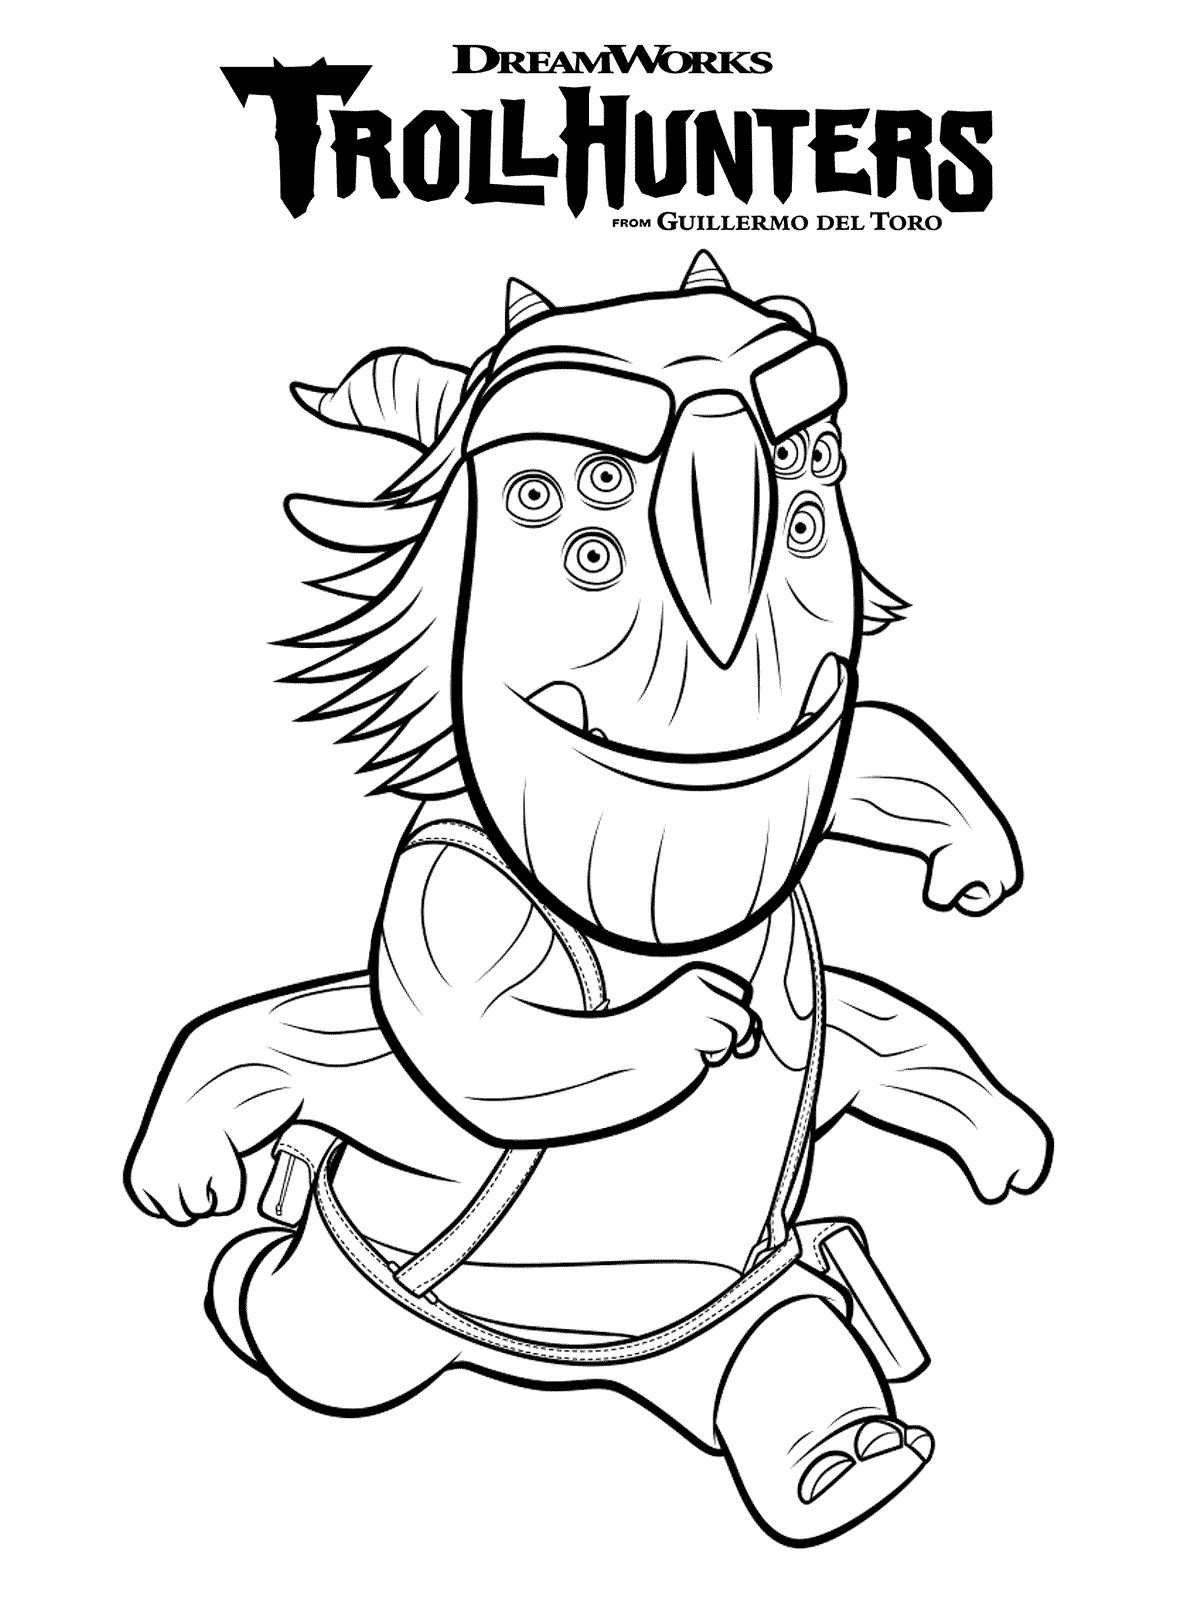 trollhunters coloring pages Kids n fun.| 10 coloring pages of Trollhunters trollhunters coloring pages